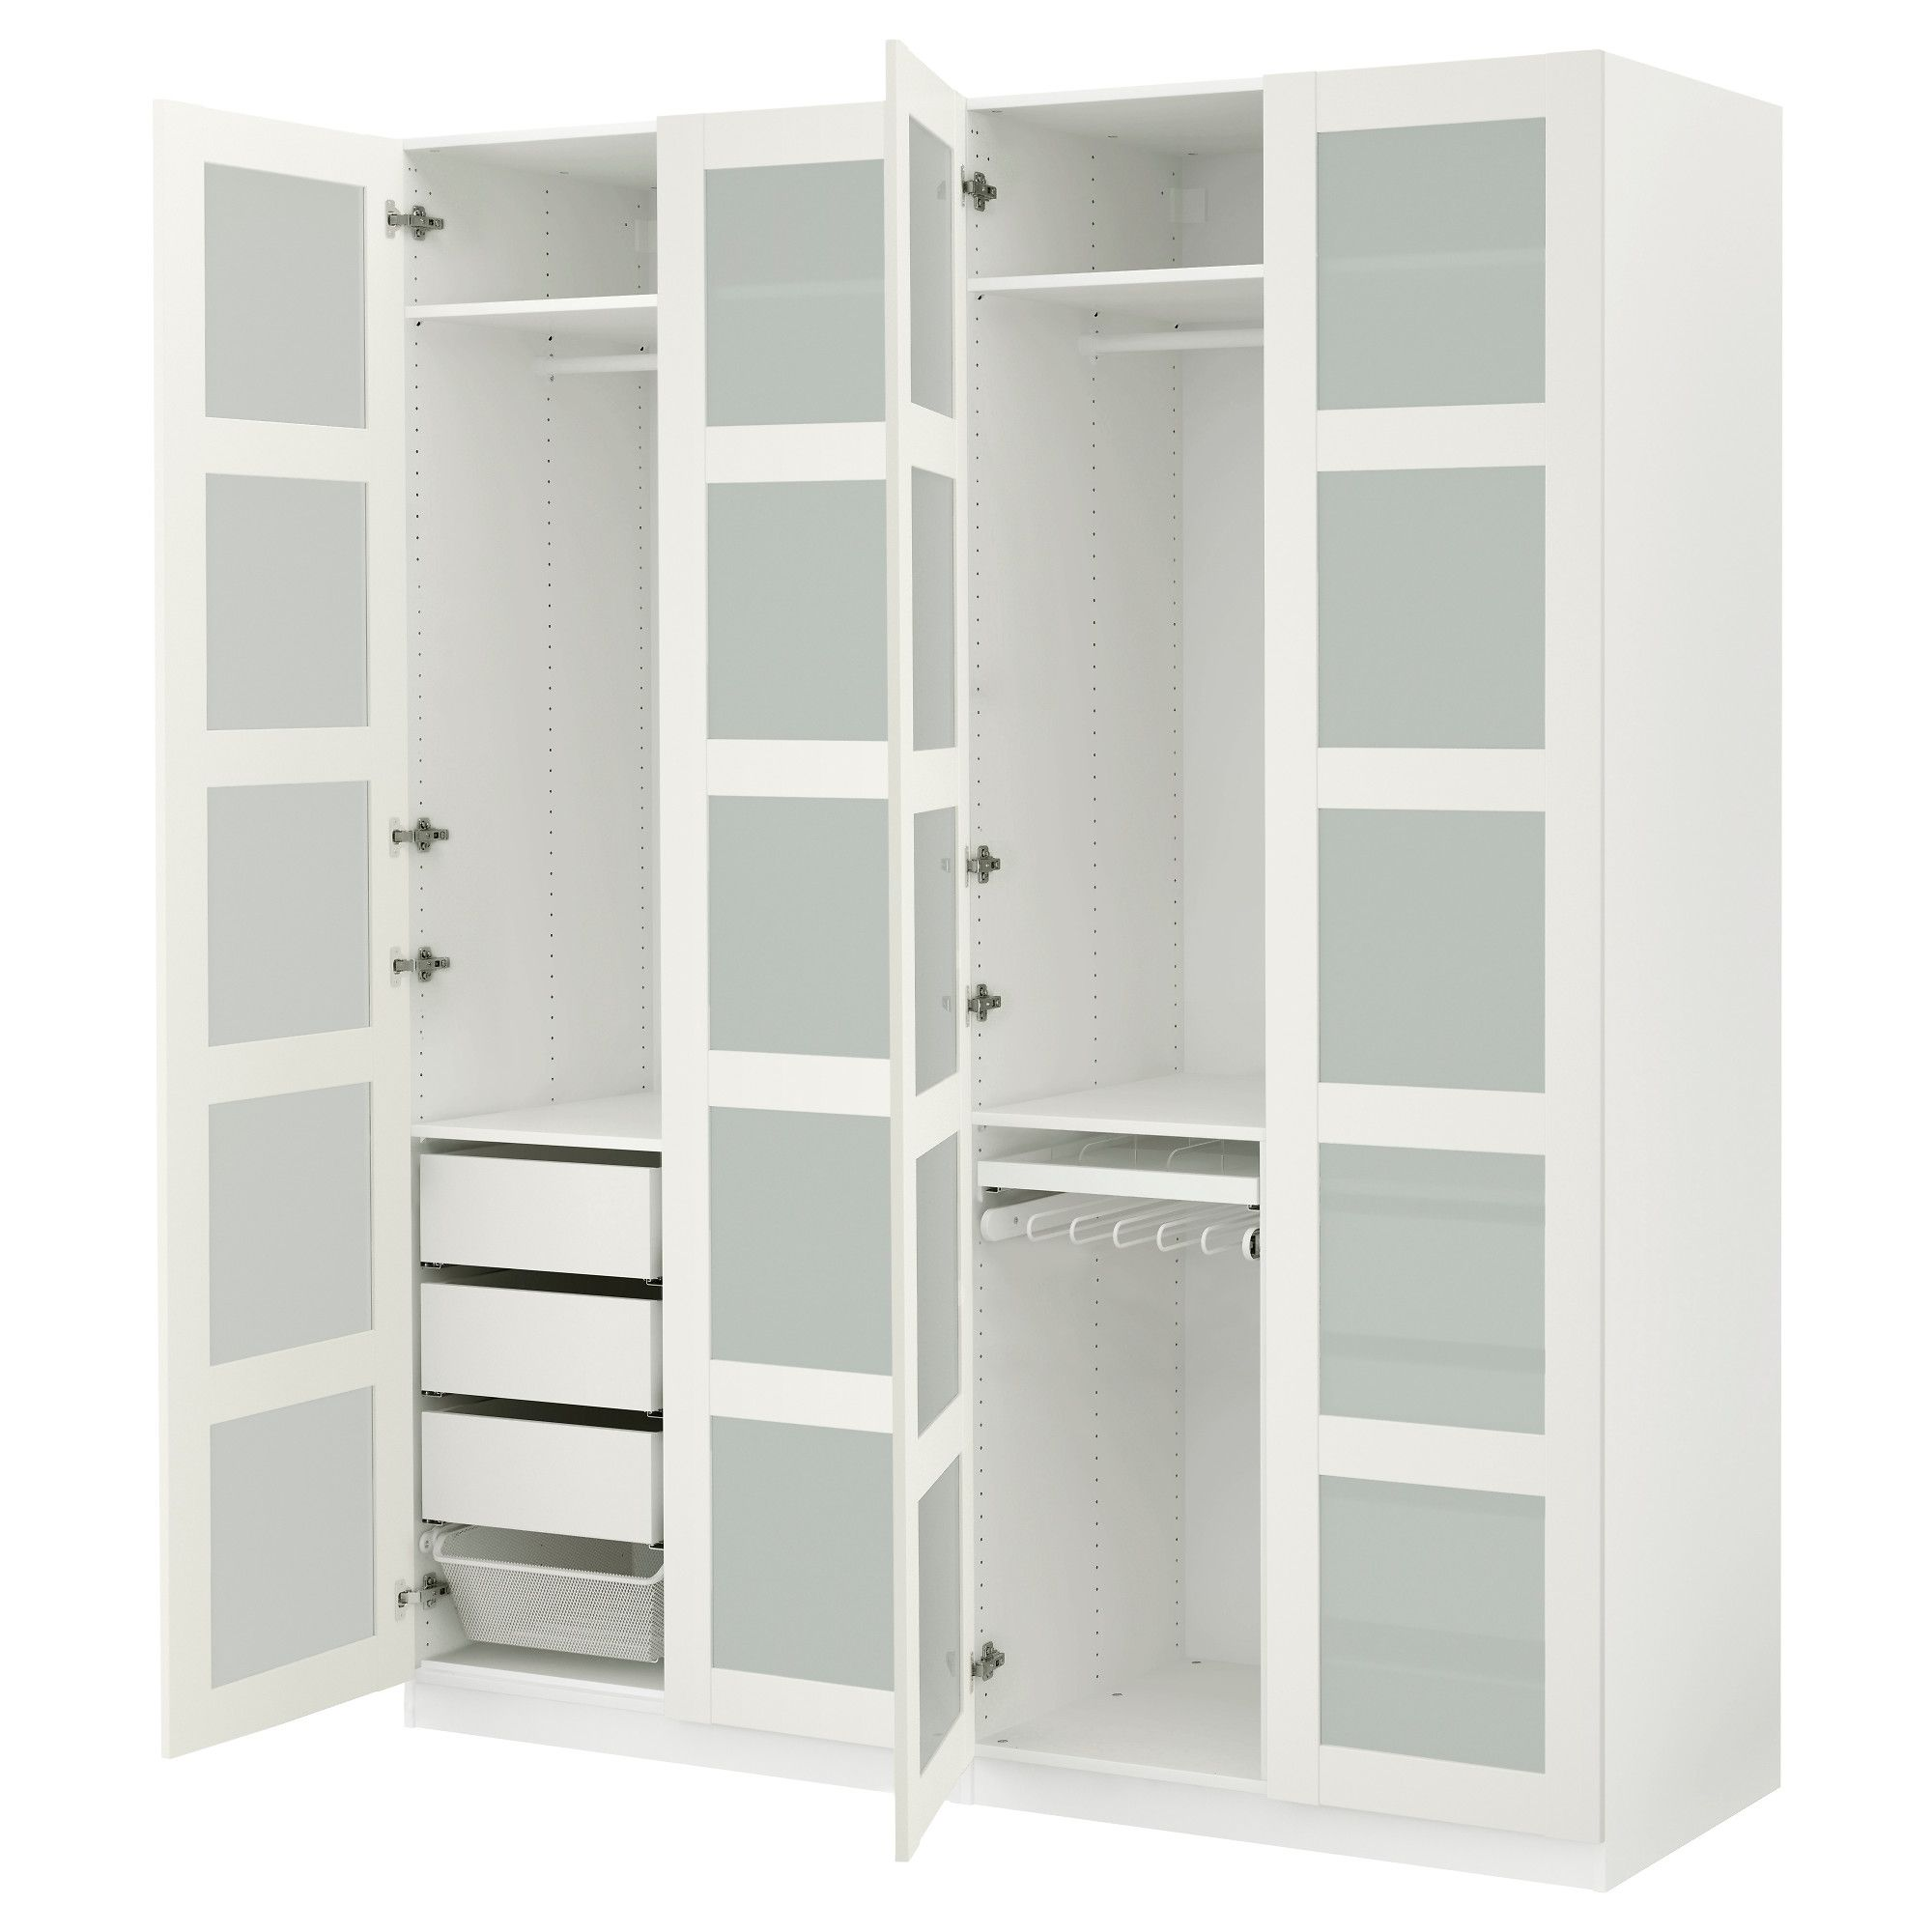 read doors gb the fitted terms about white with ikea mirror combinations in wardrobes year products pax wardrobe brochure auli en glass guarantee